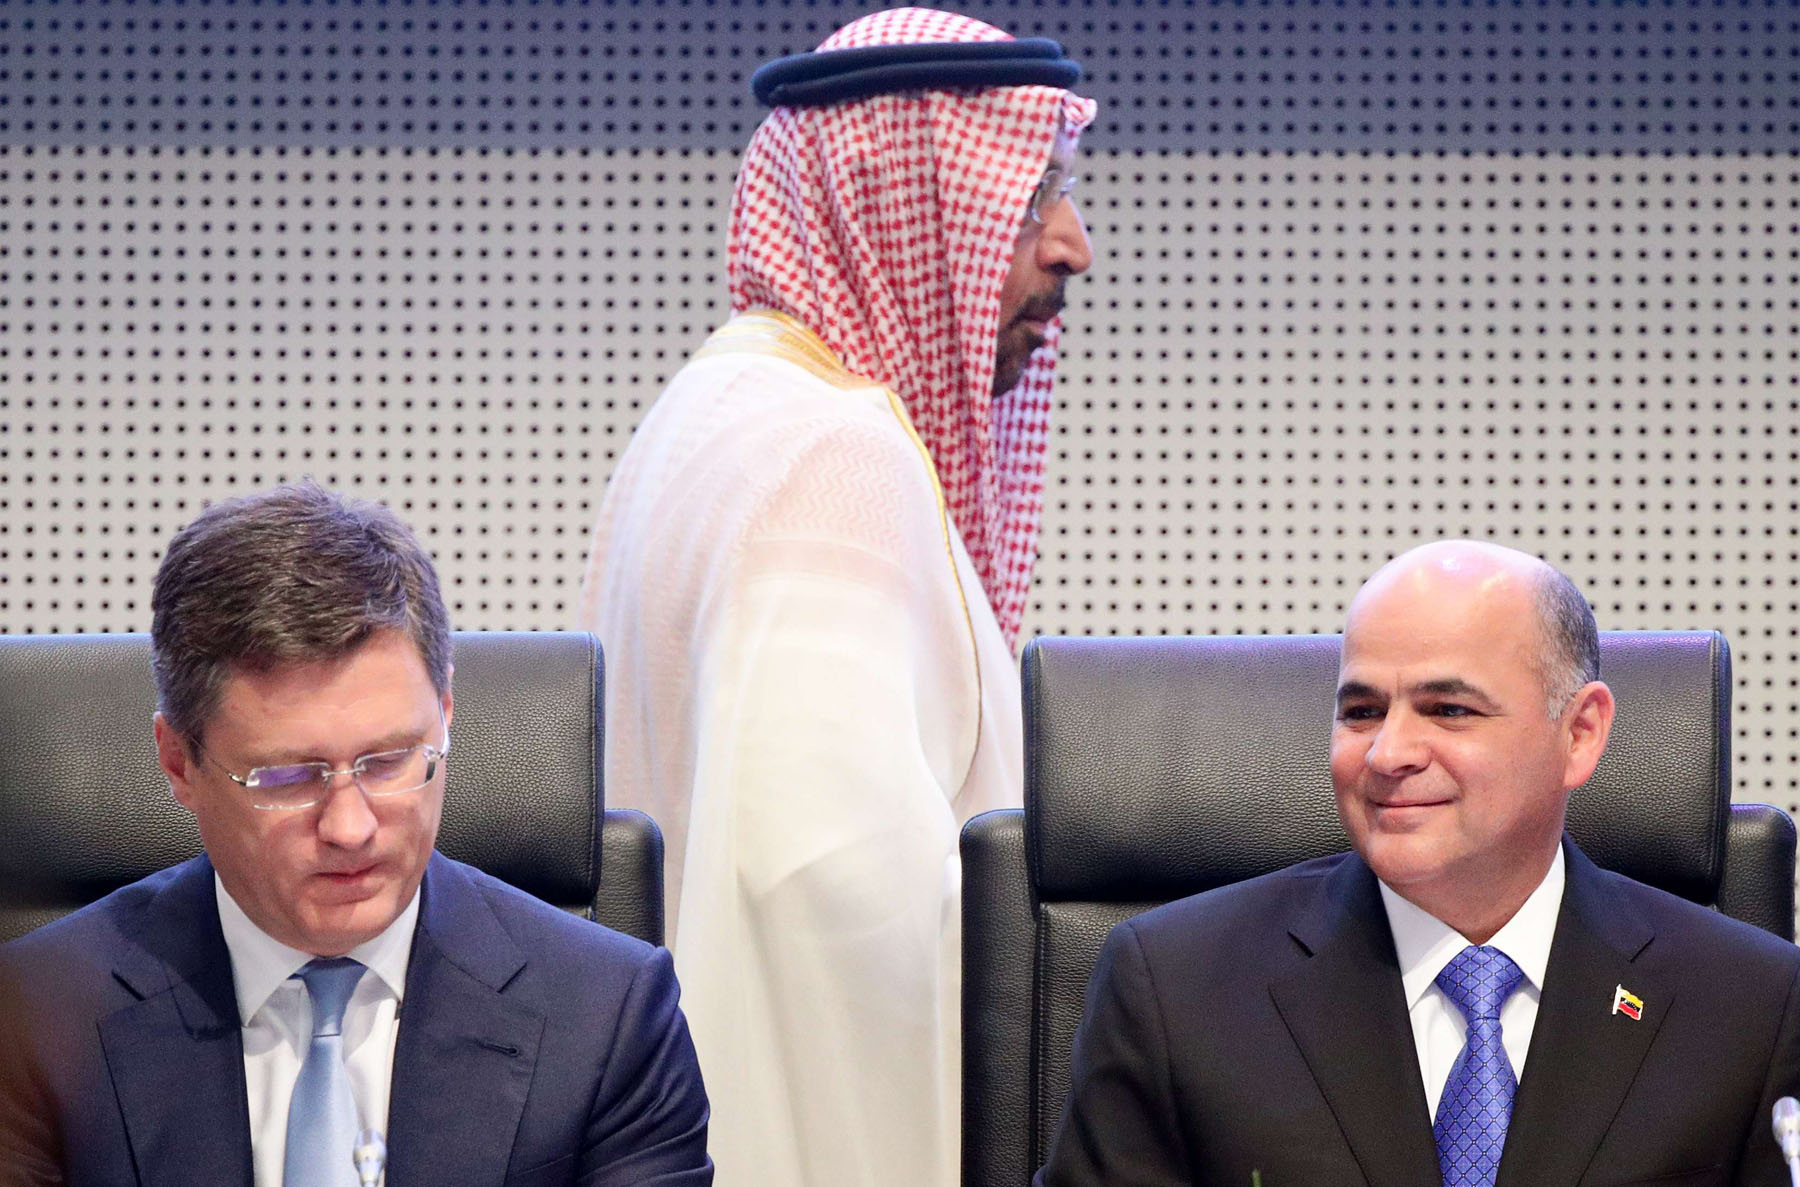 Russian Energy Minister Alexander Novak (L), Venezuela's Oil Minister Manuel Quevedo (R) and Saudi Arabia's Oil Minister Khalid al-Falih at an OPEC+ meeting in Vienna, July 2. (Reuters)